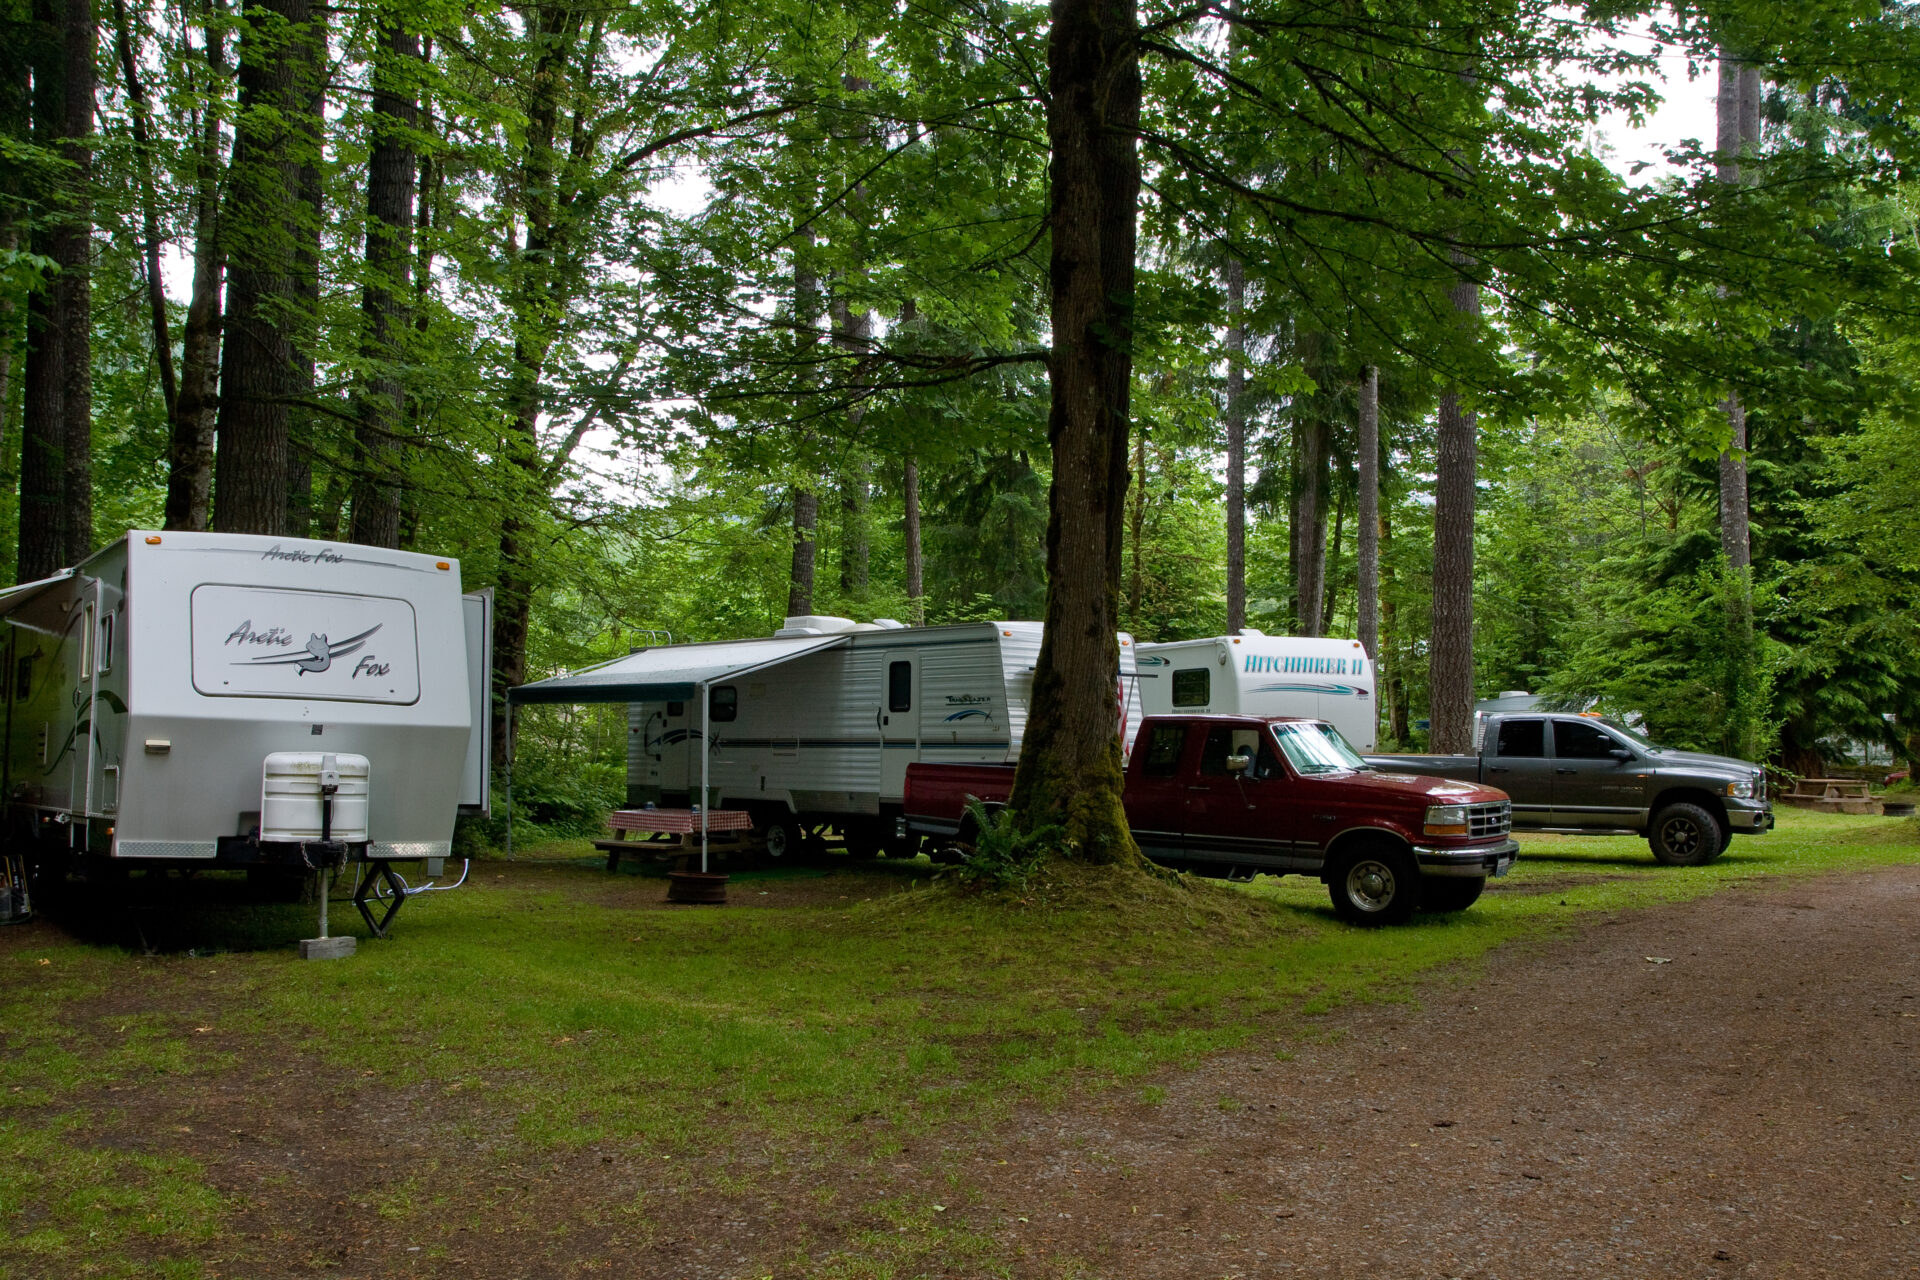 Tower Rock U-Fish R.V. Wooded RV Campground